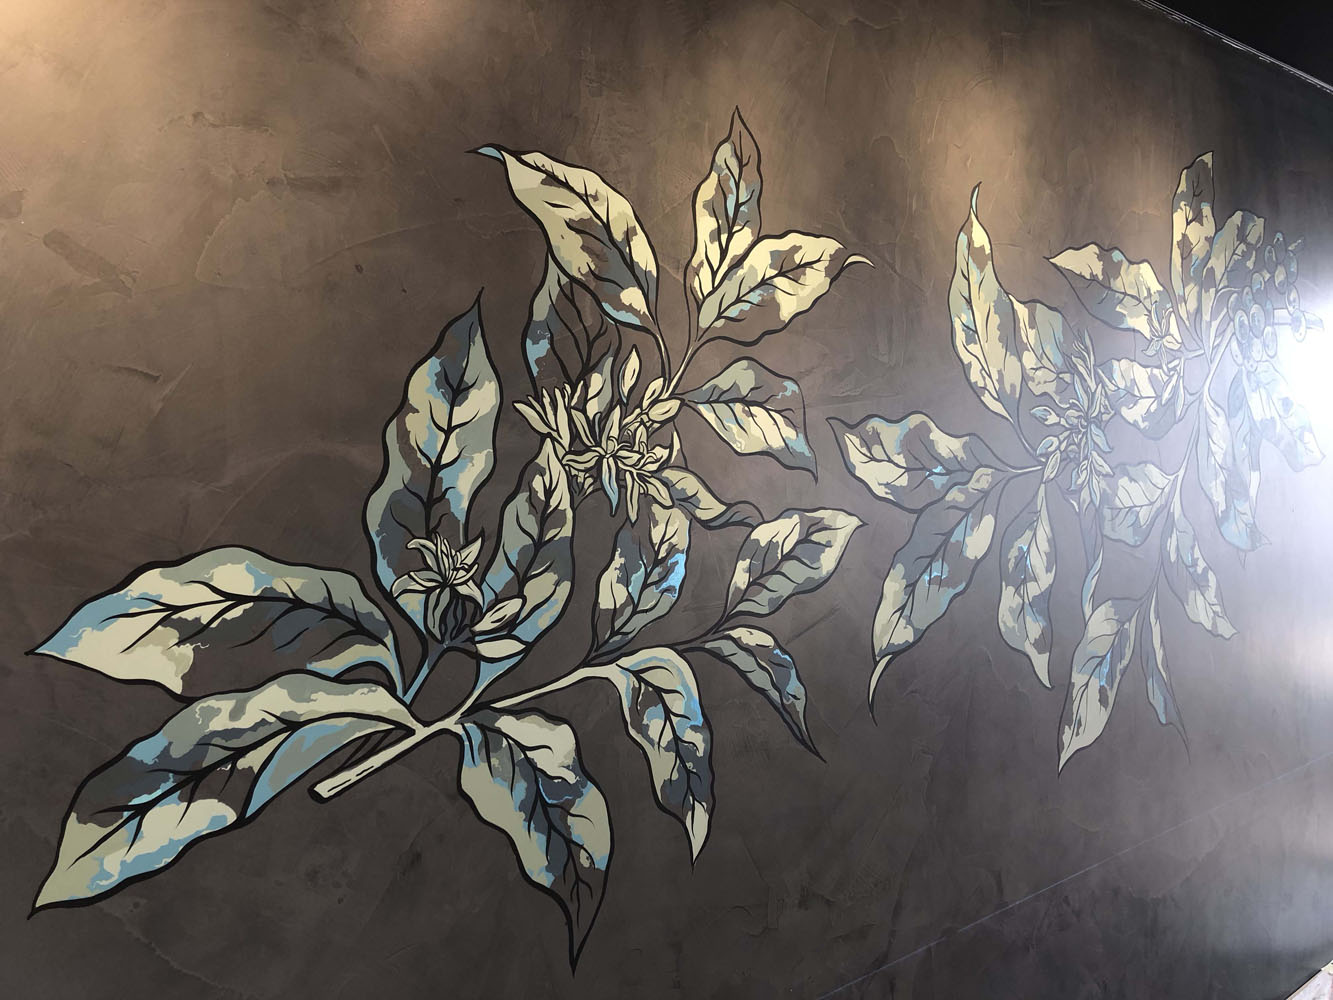 the-art-of-wall-Starbucks-caboulture-botanical-coffee-branch-wall-art-mural-3